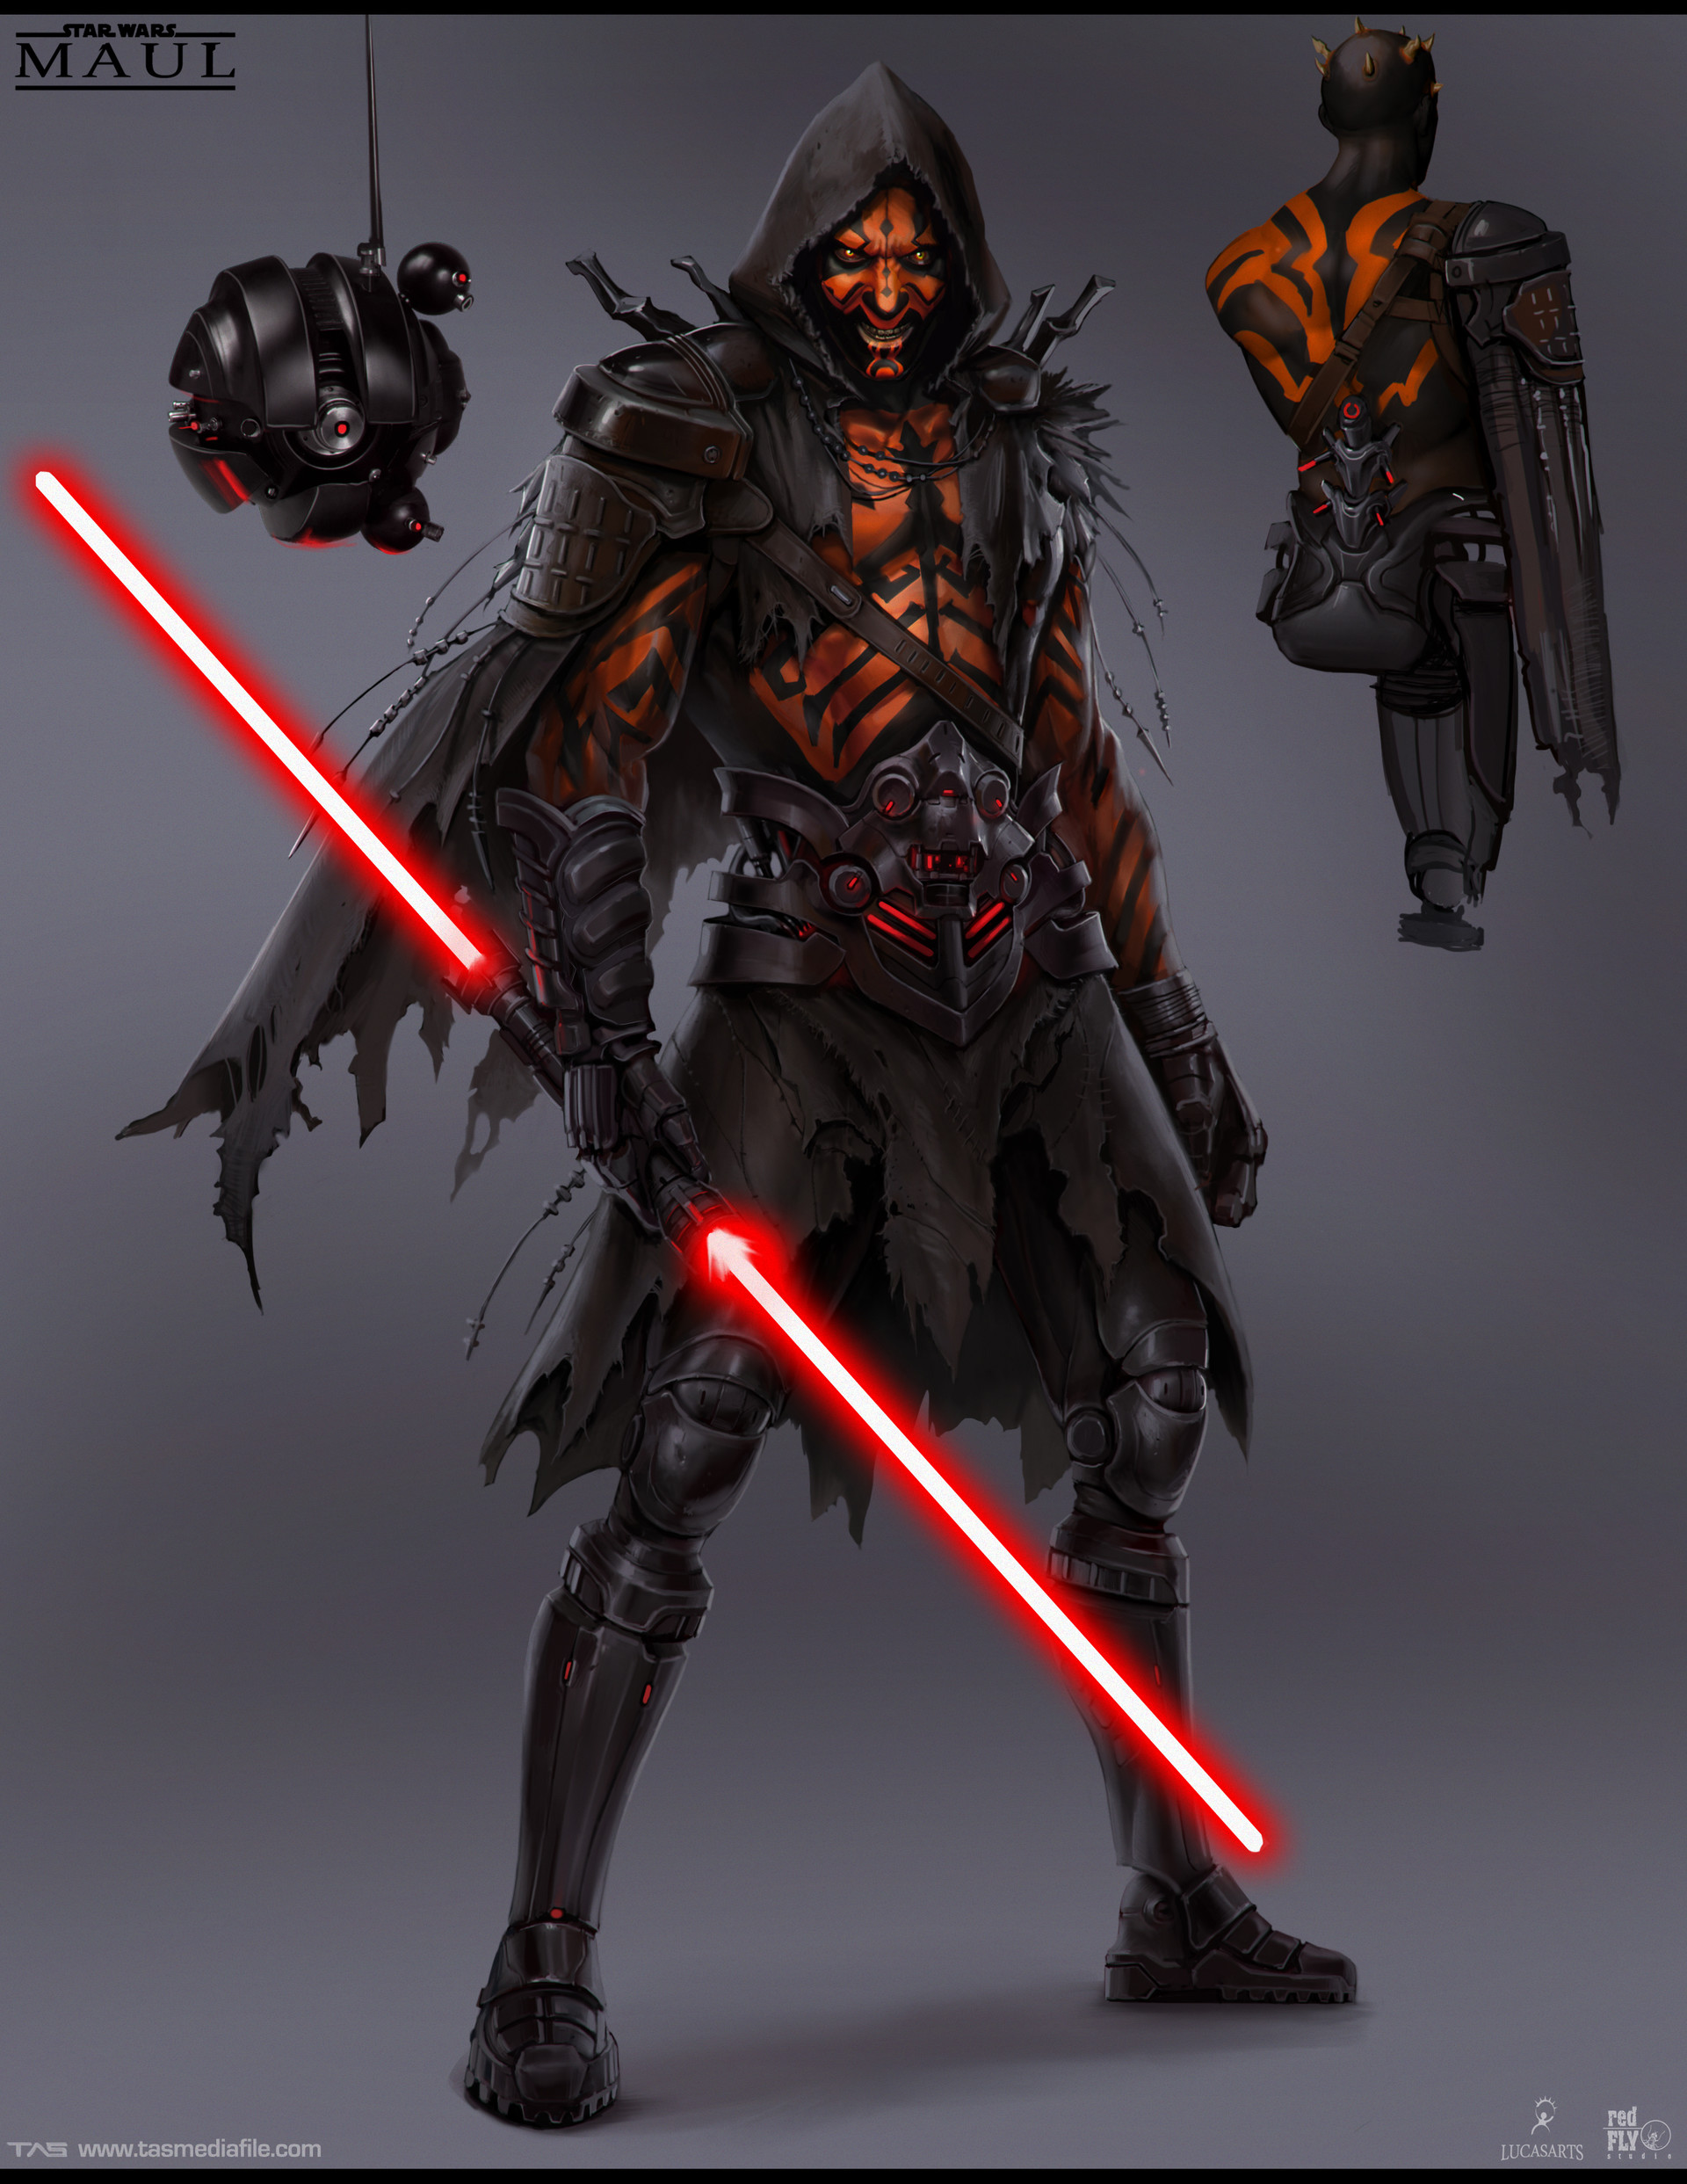 Battle of the Sith Lords concept art